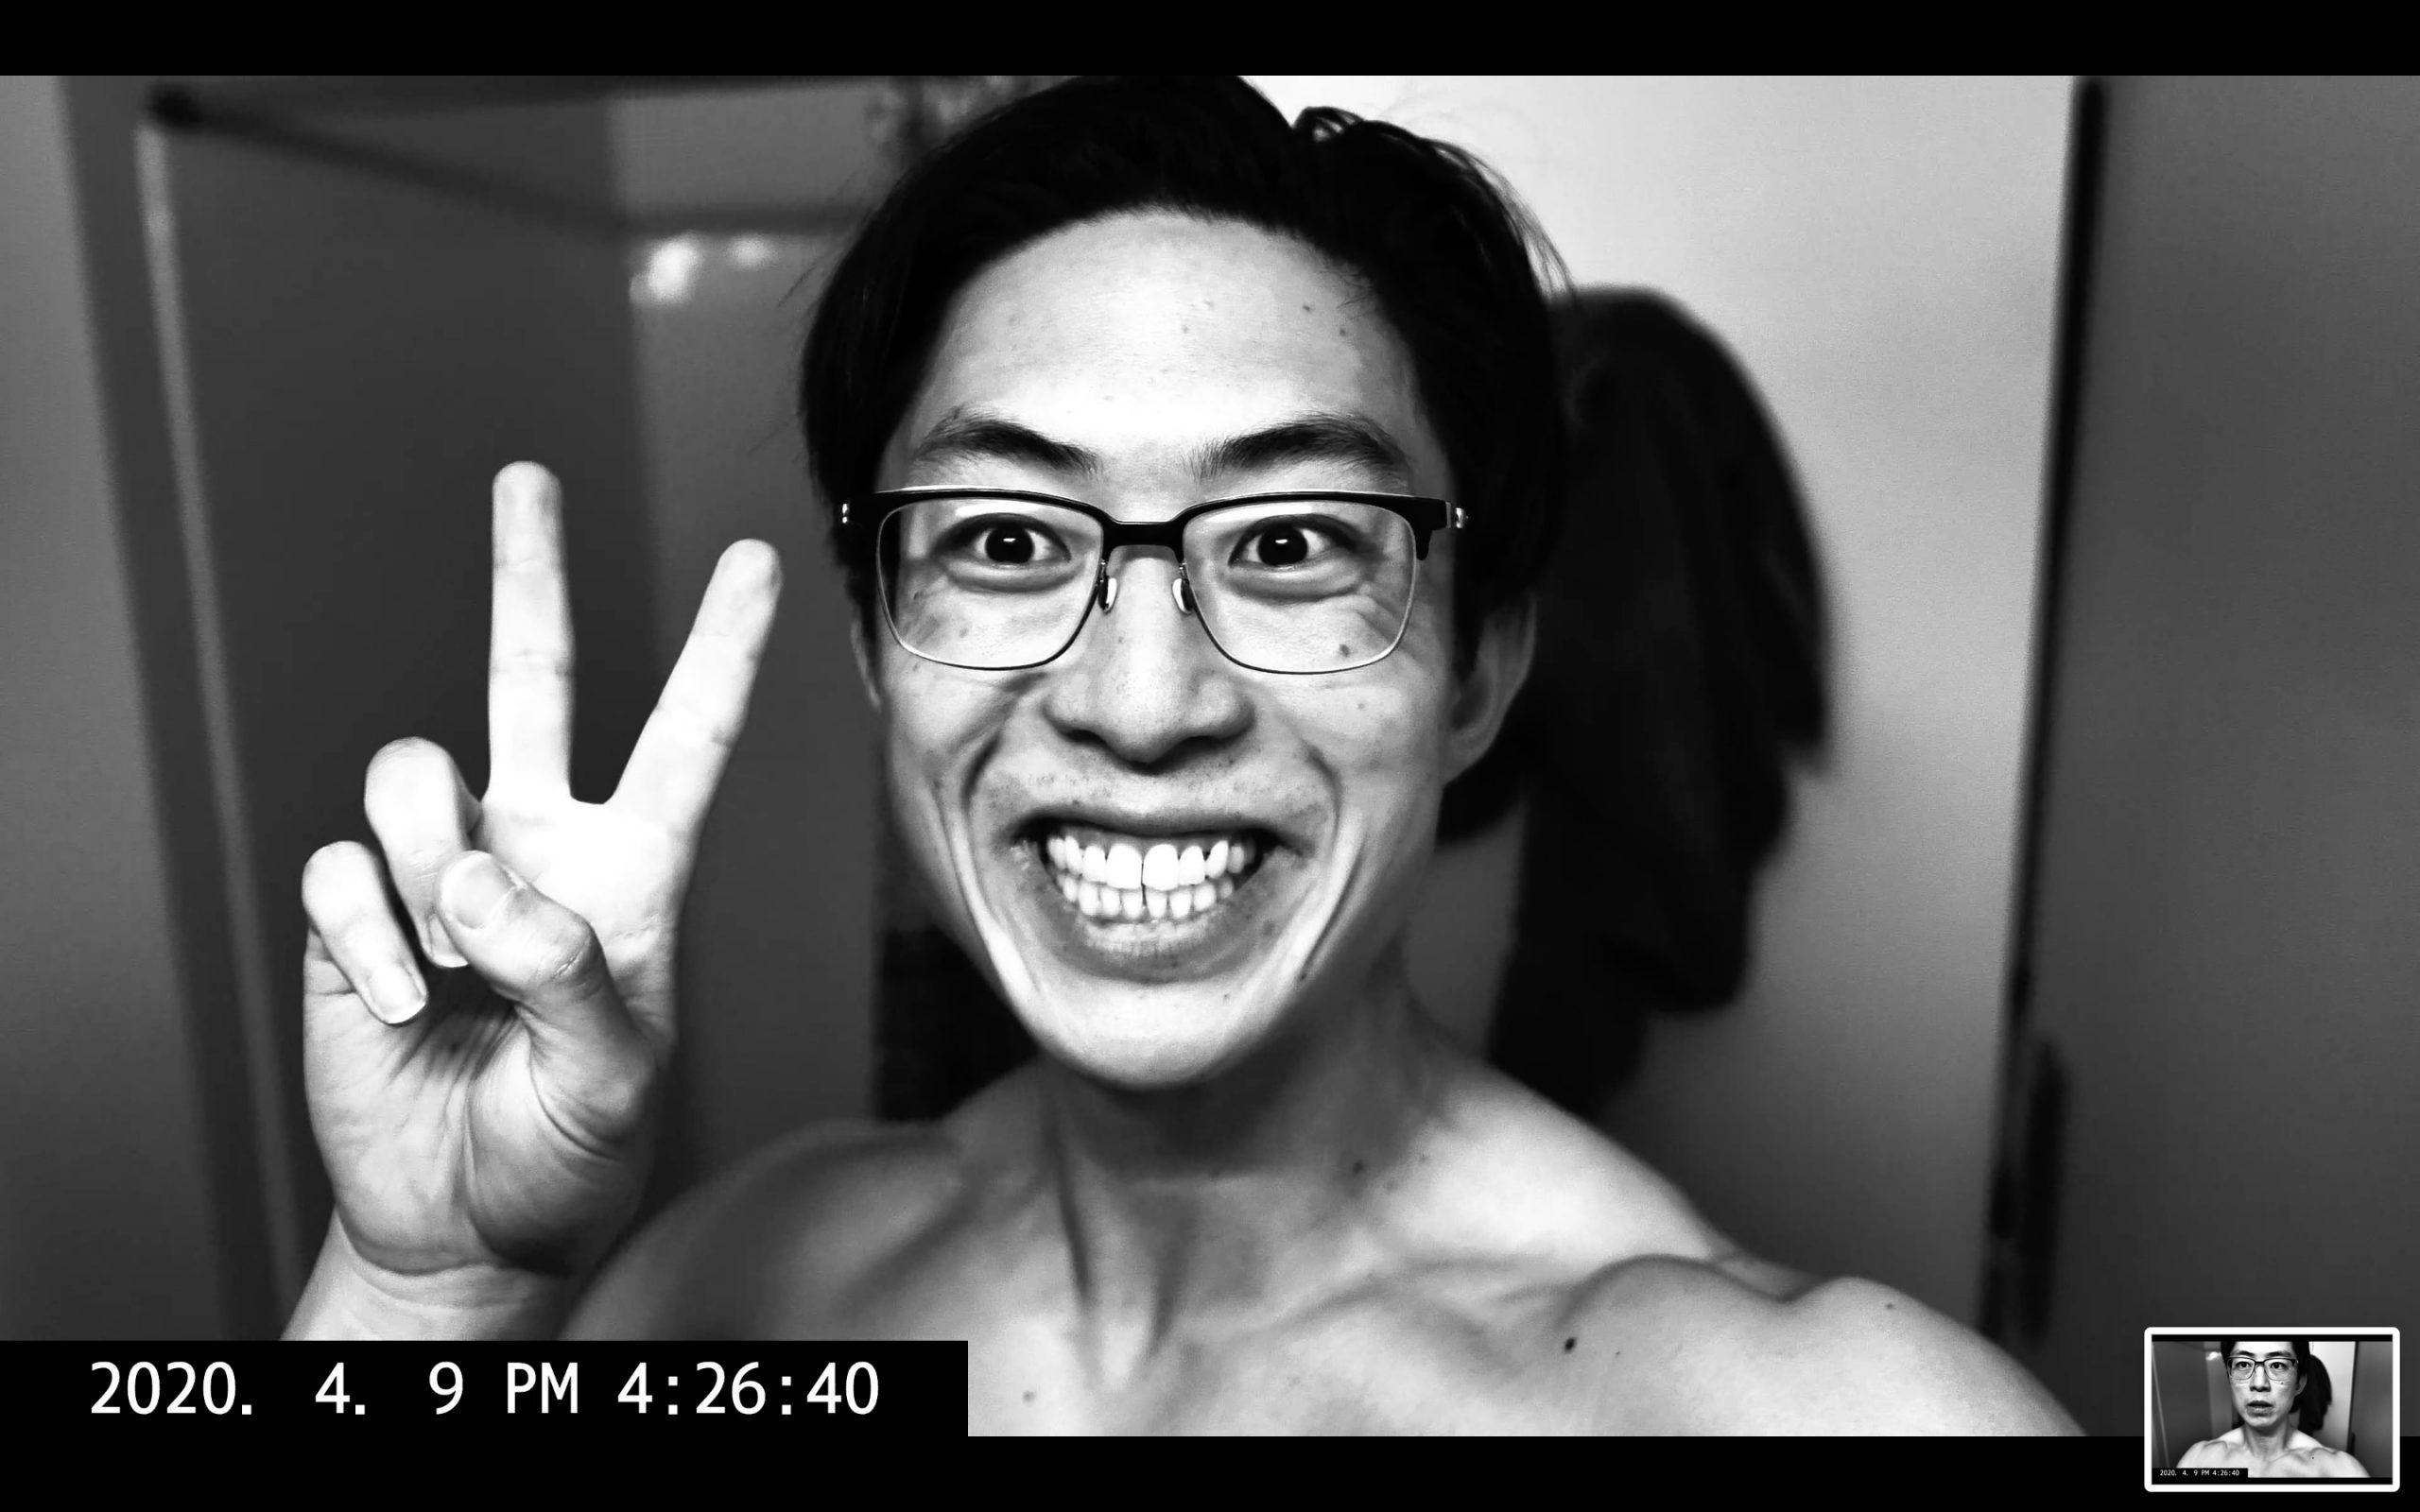 selfie peace ERIC KIM muscle flex 4k screenshot 00059